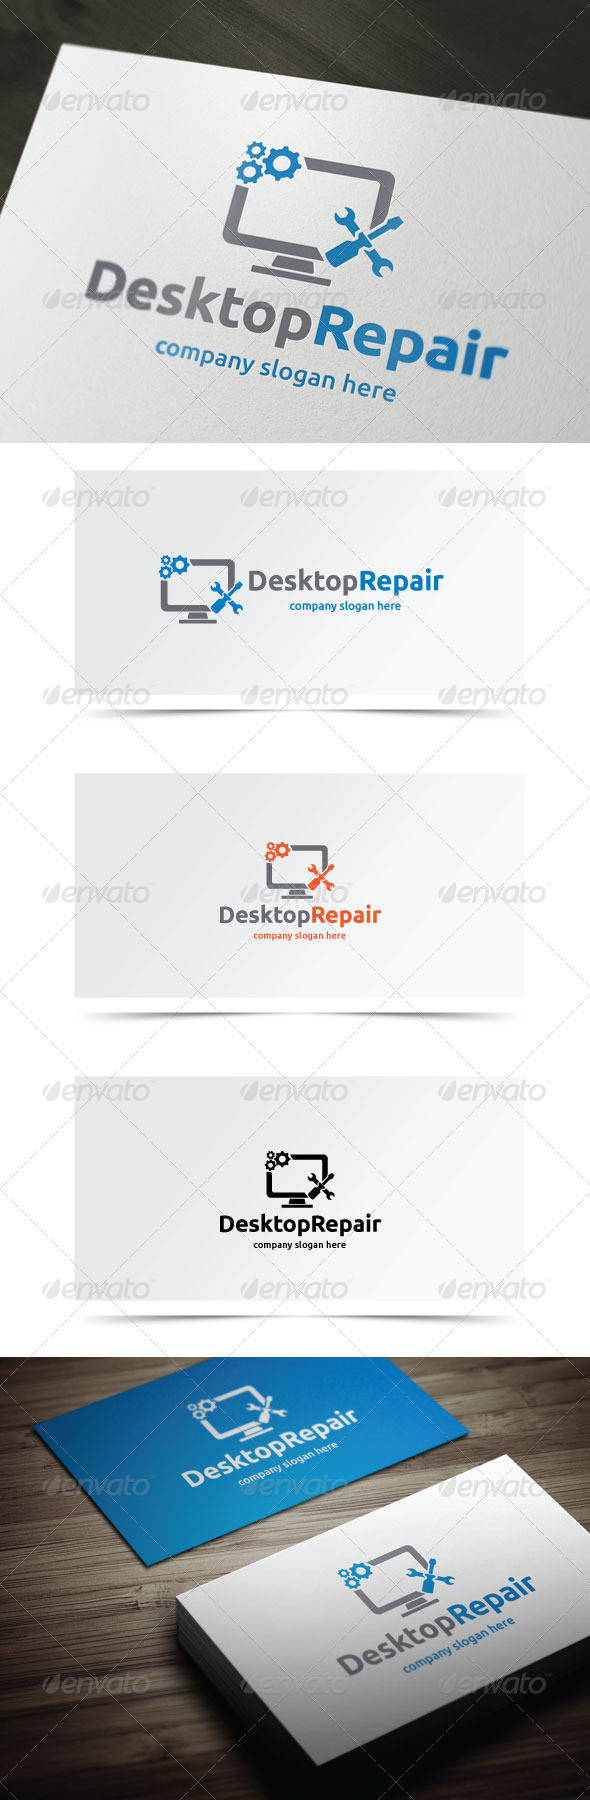 GraphicRiver Desktop Repair 6674077